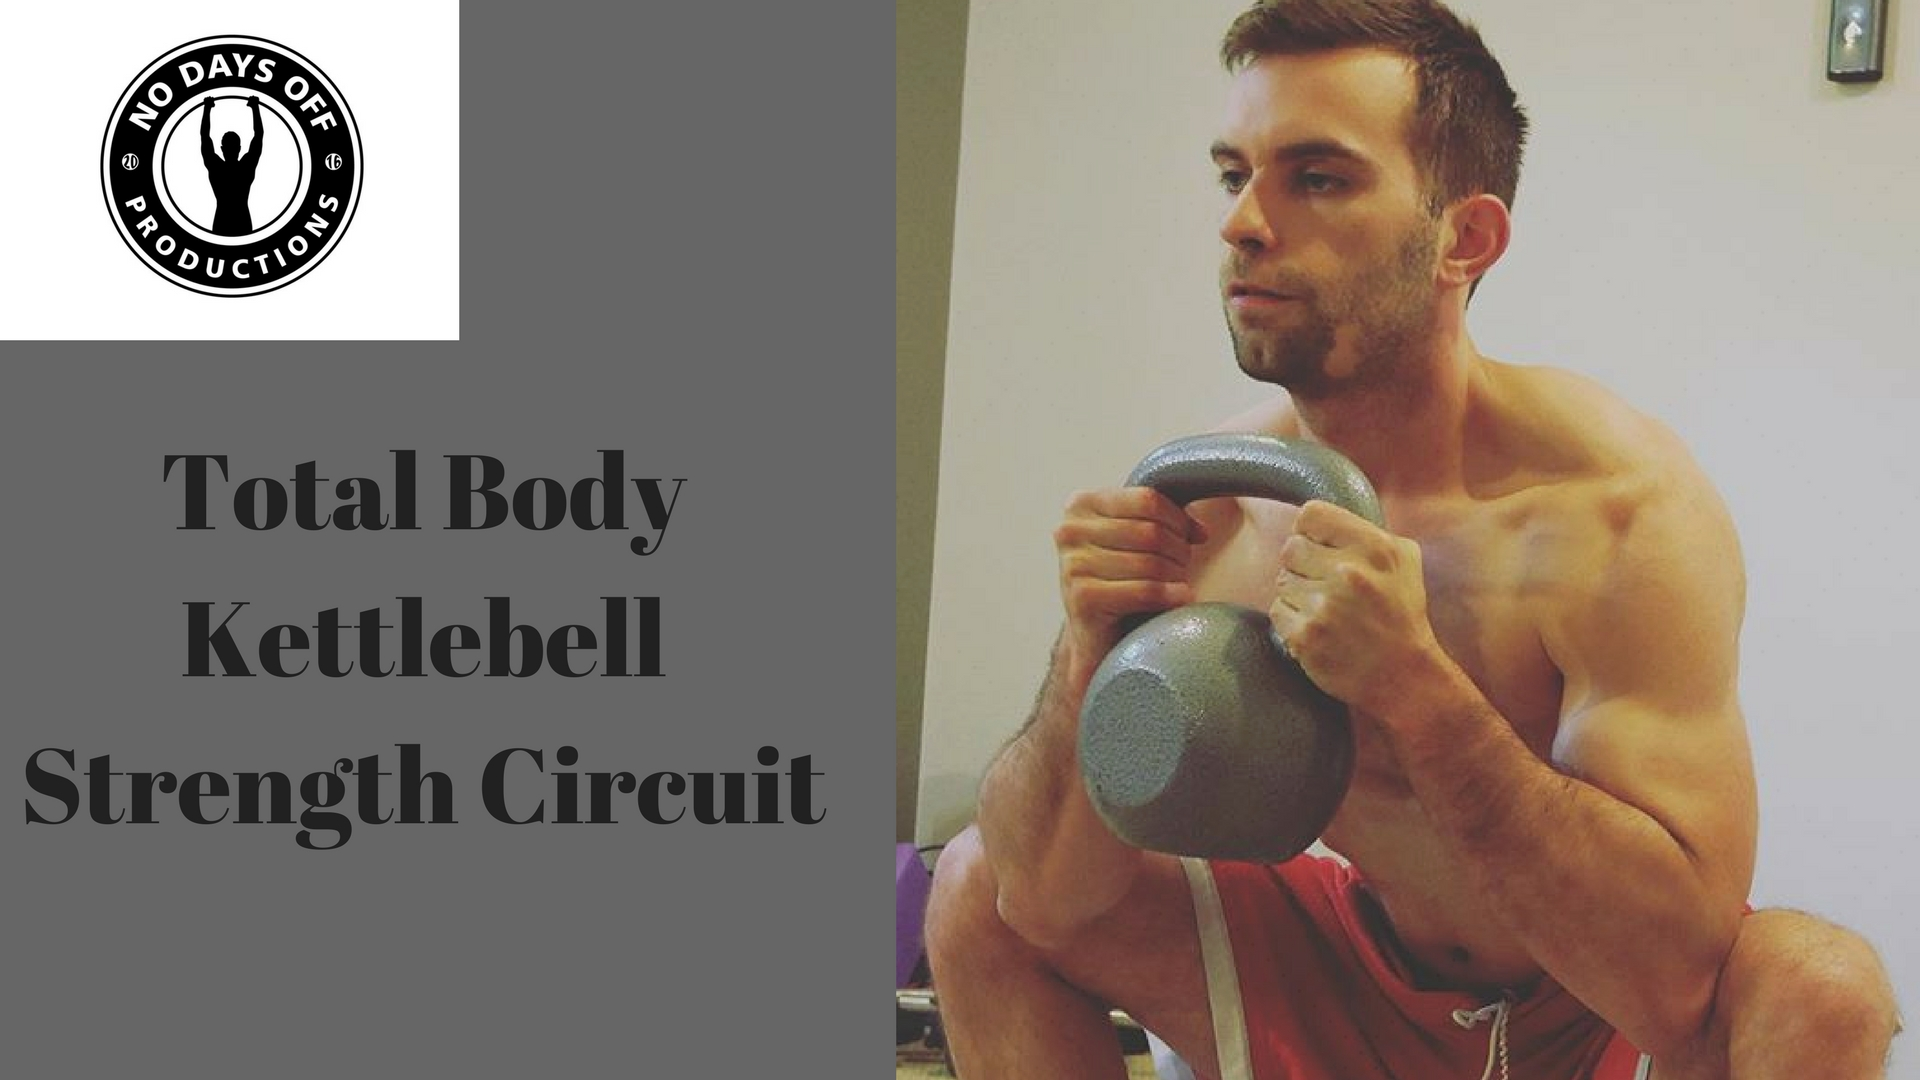 Totalbody Kettlebell HIIT- Build lean muscle